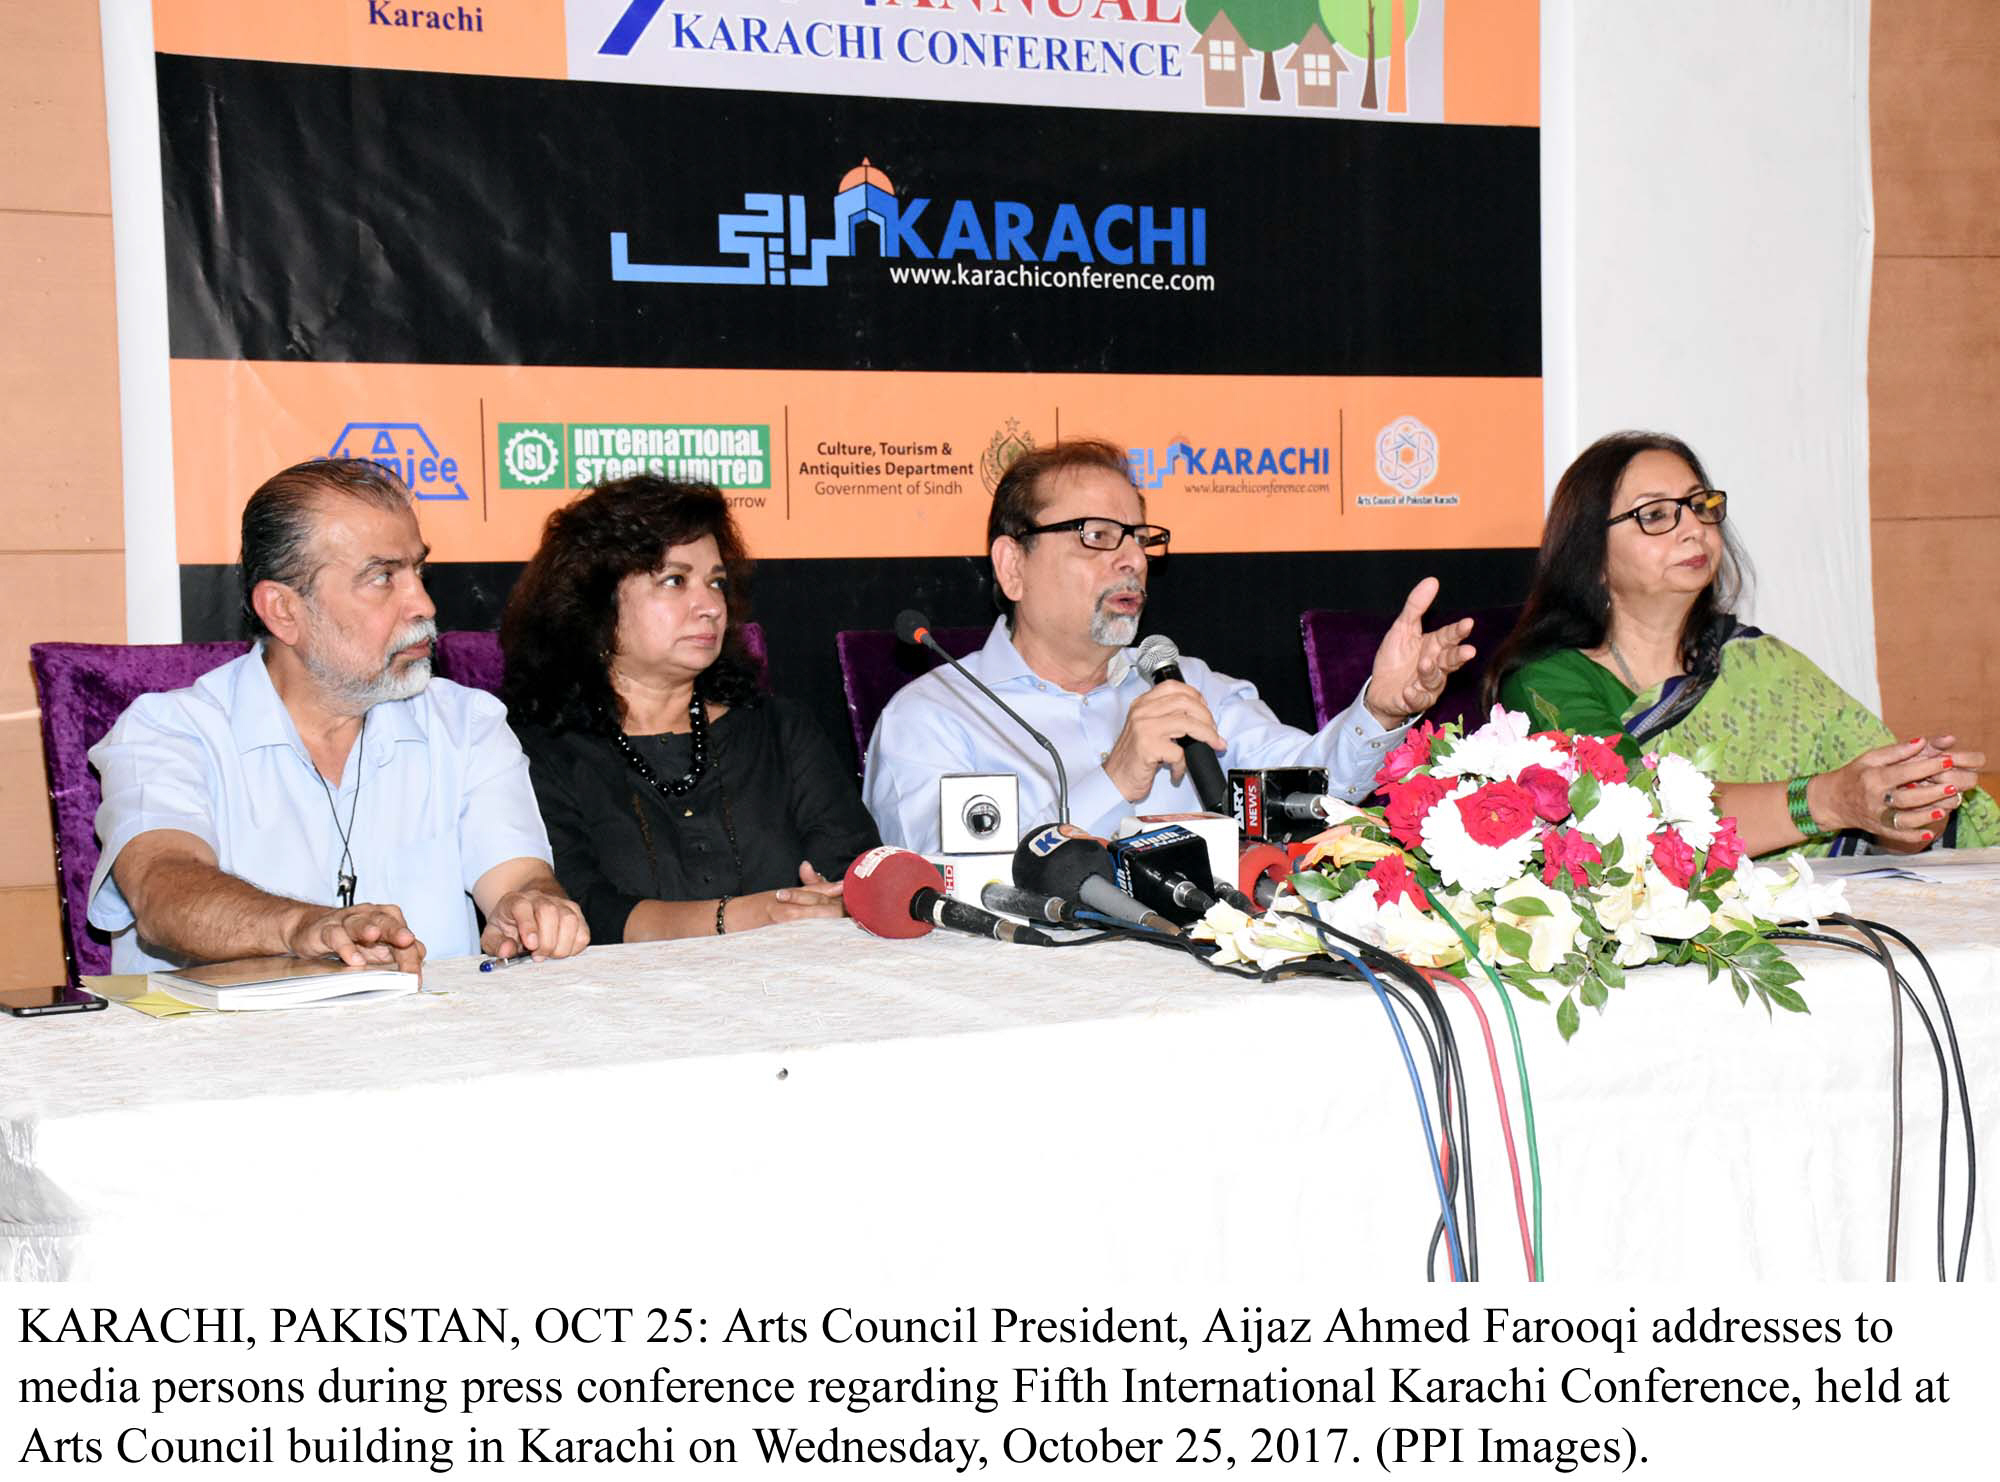 karachi conference to kick off on friday